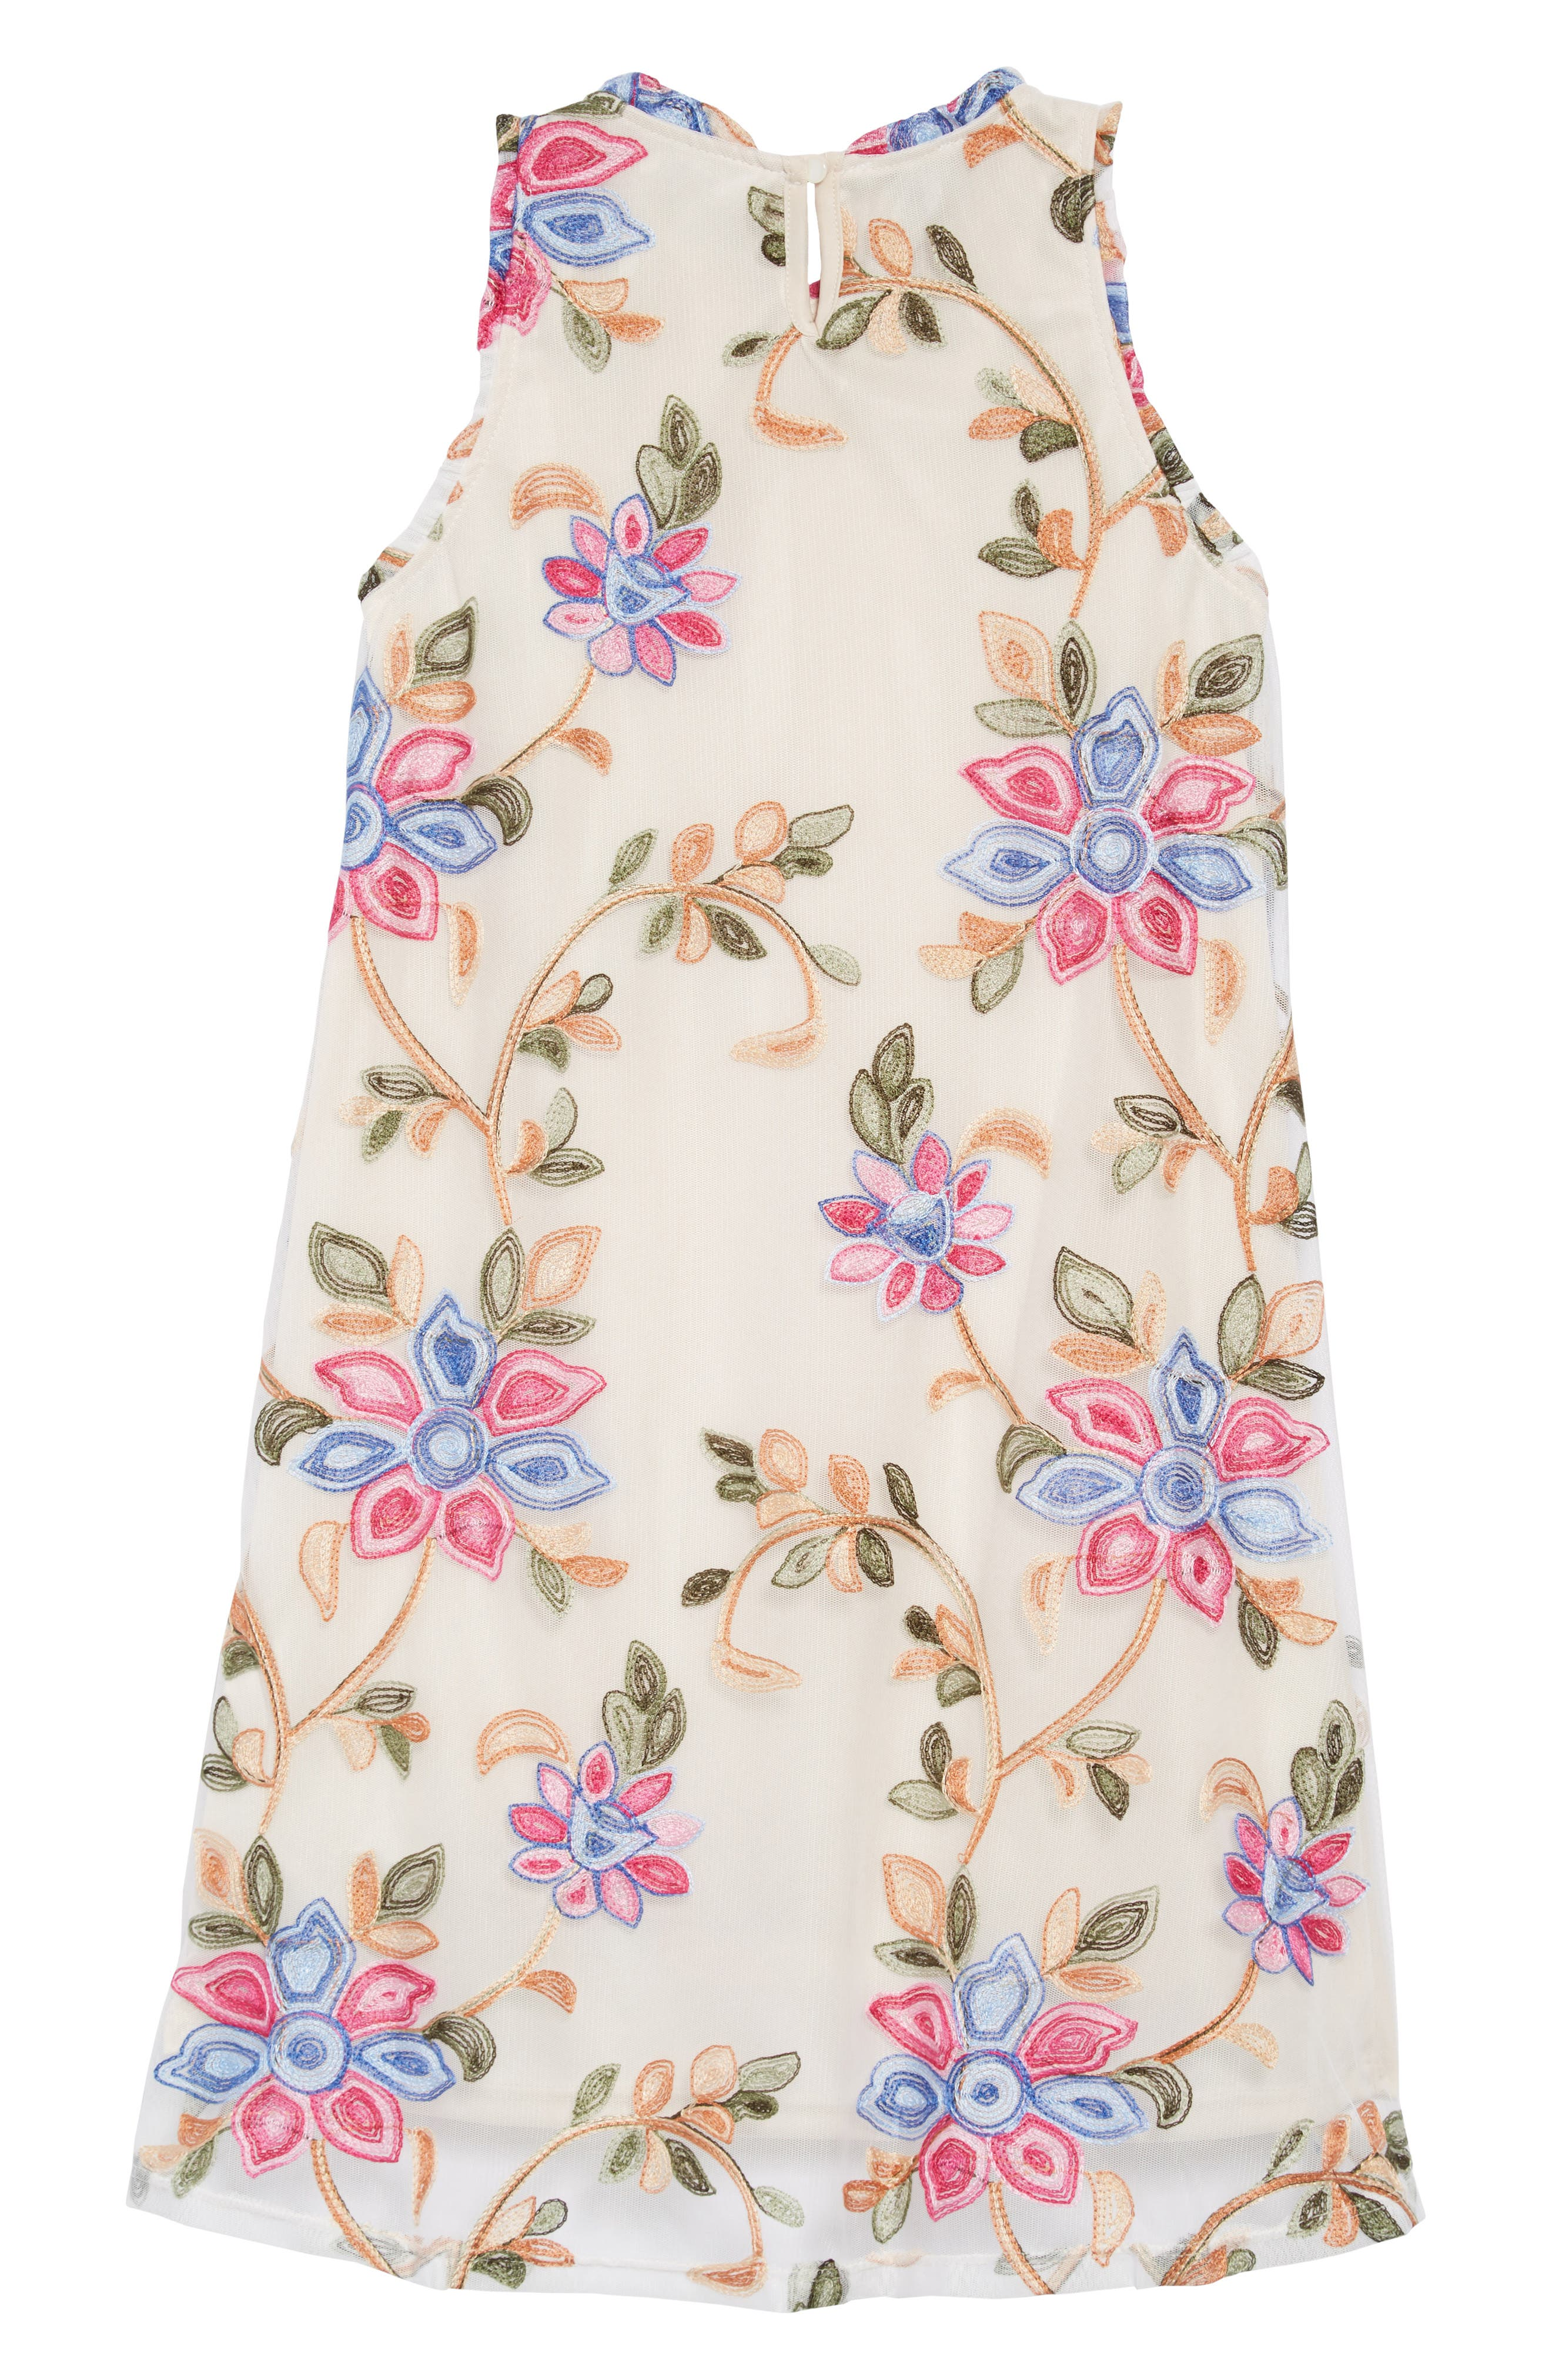 Floral Embroidered Shift Dress,                             Alternate thumbnail 2, color,                             400